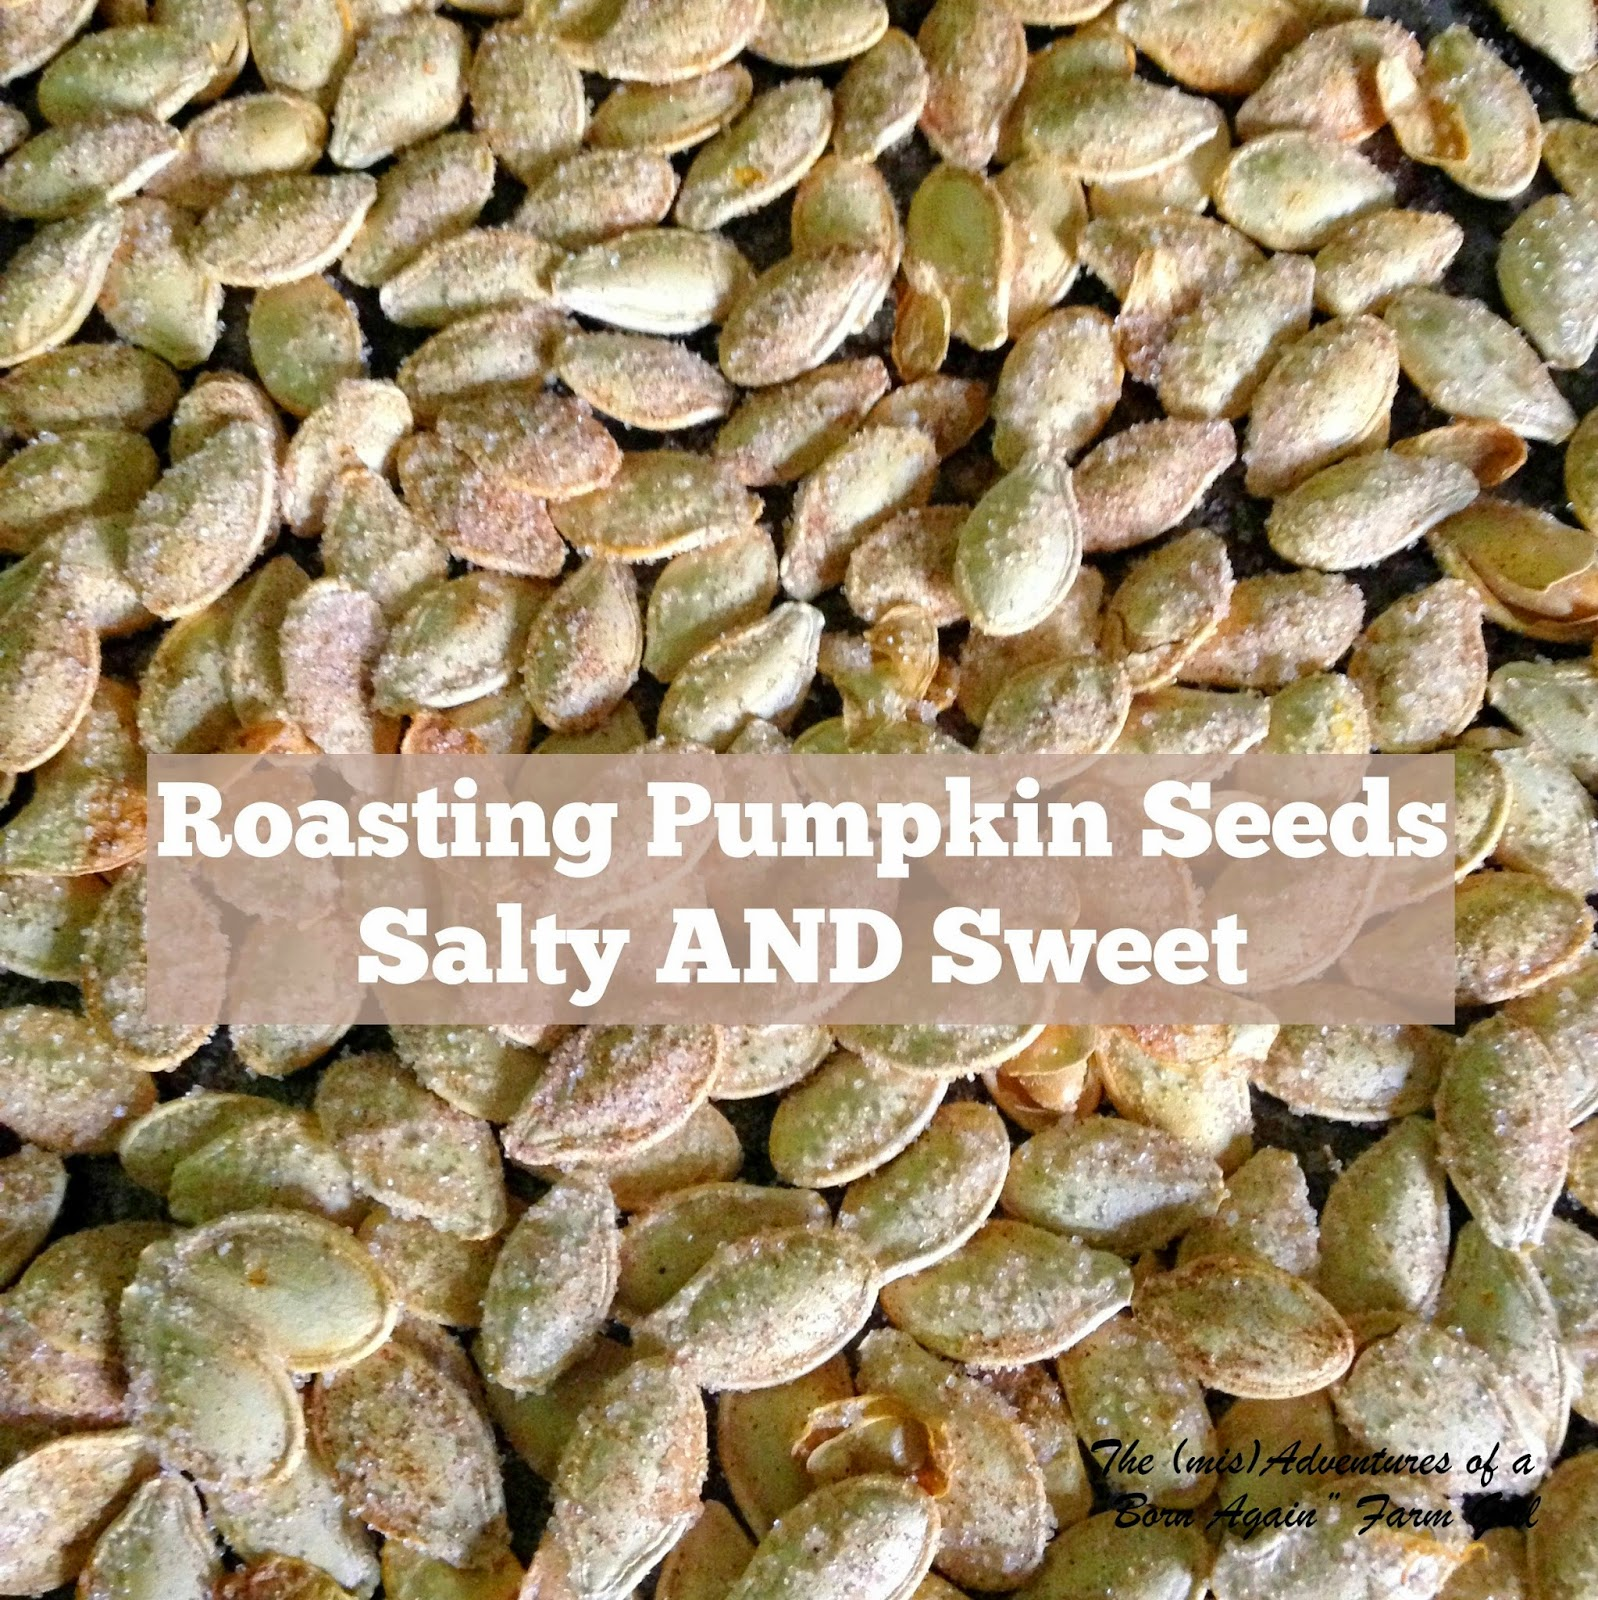 Roasting Pumpkin Seed, Salty AND Sweet